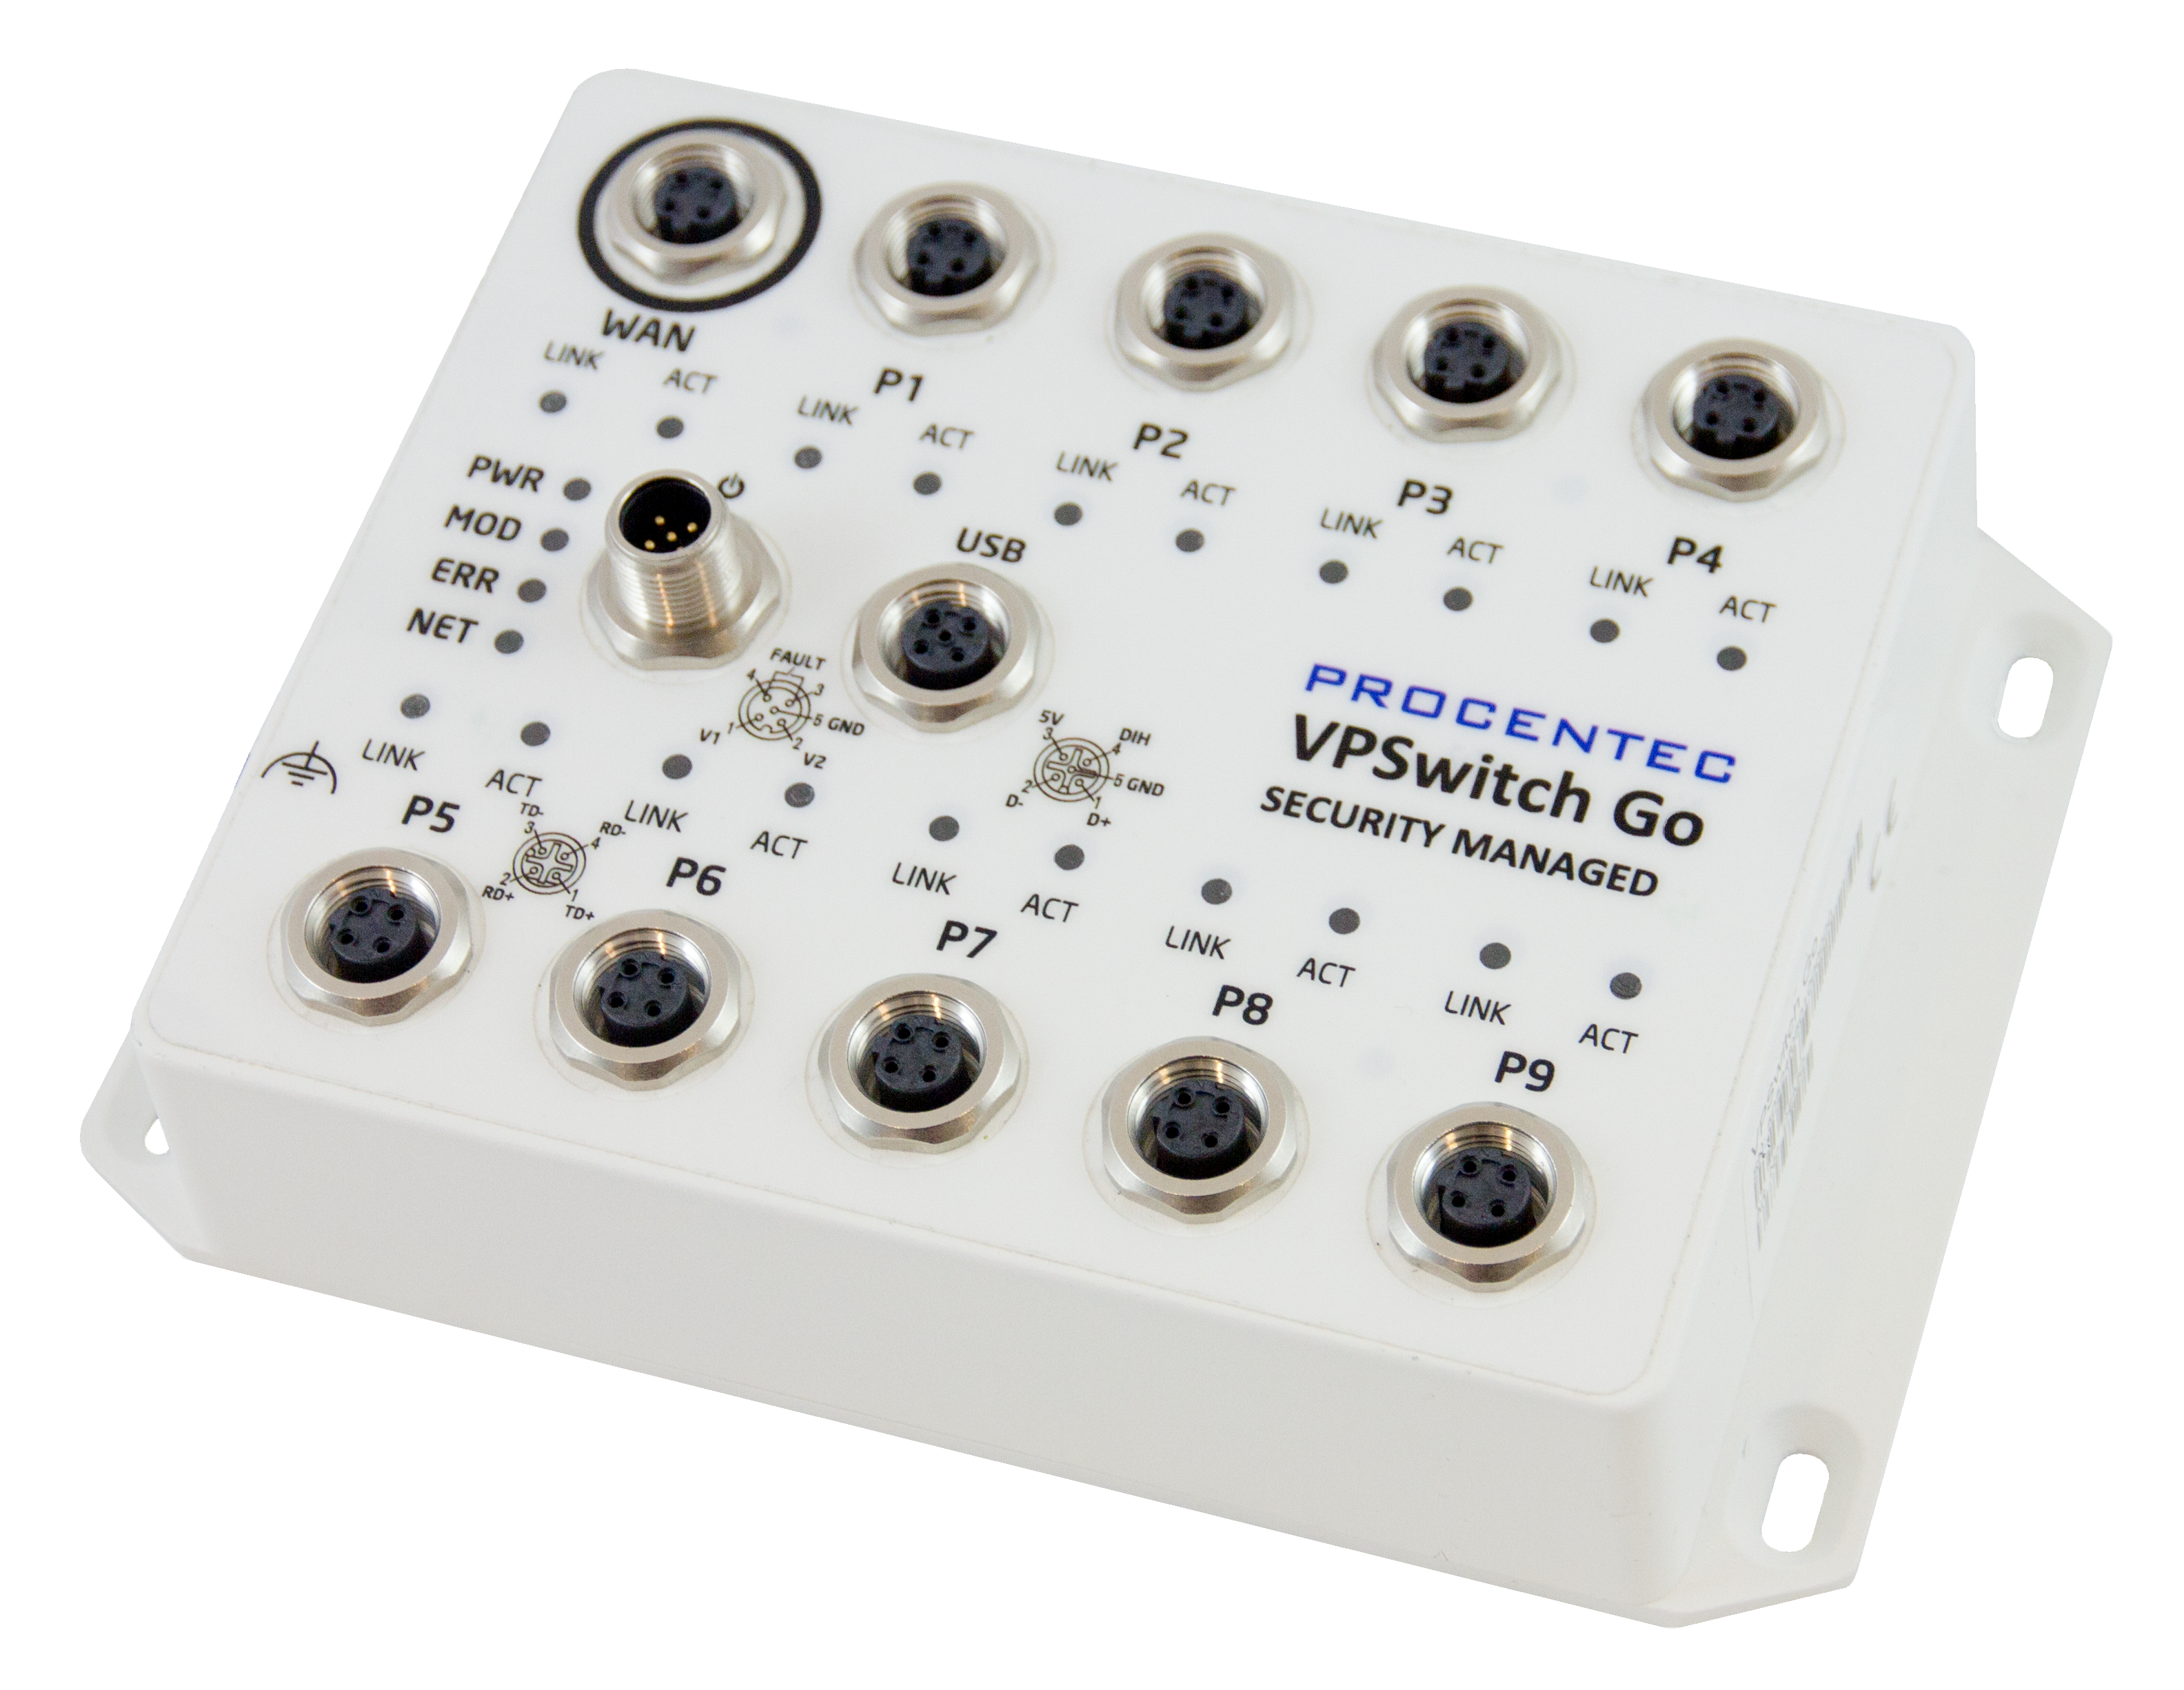 VPSwitch Go Security Managed 10TX-M12